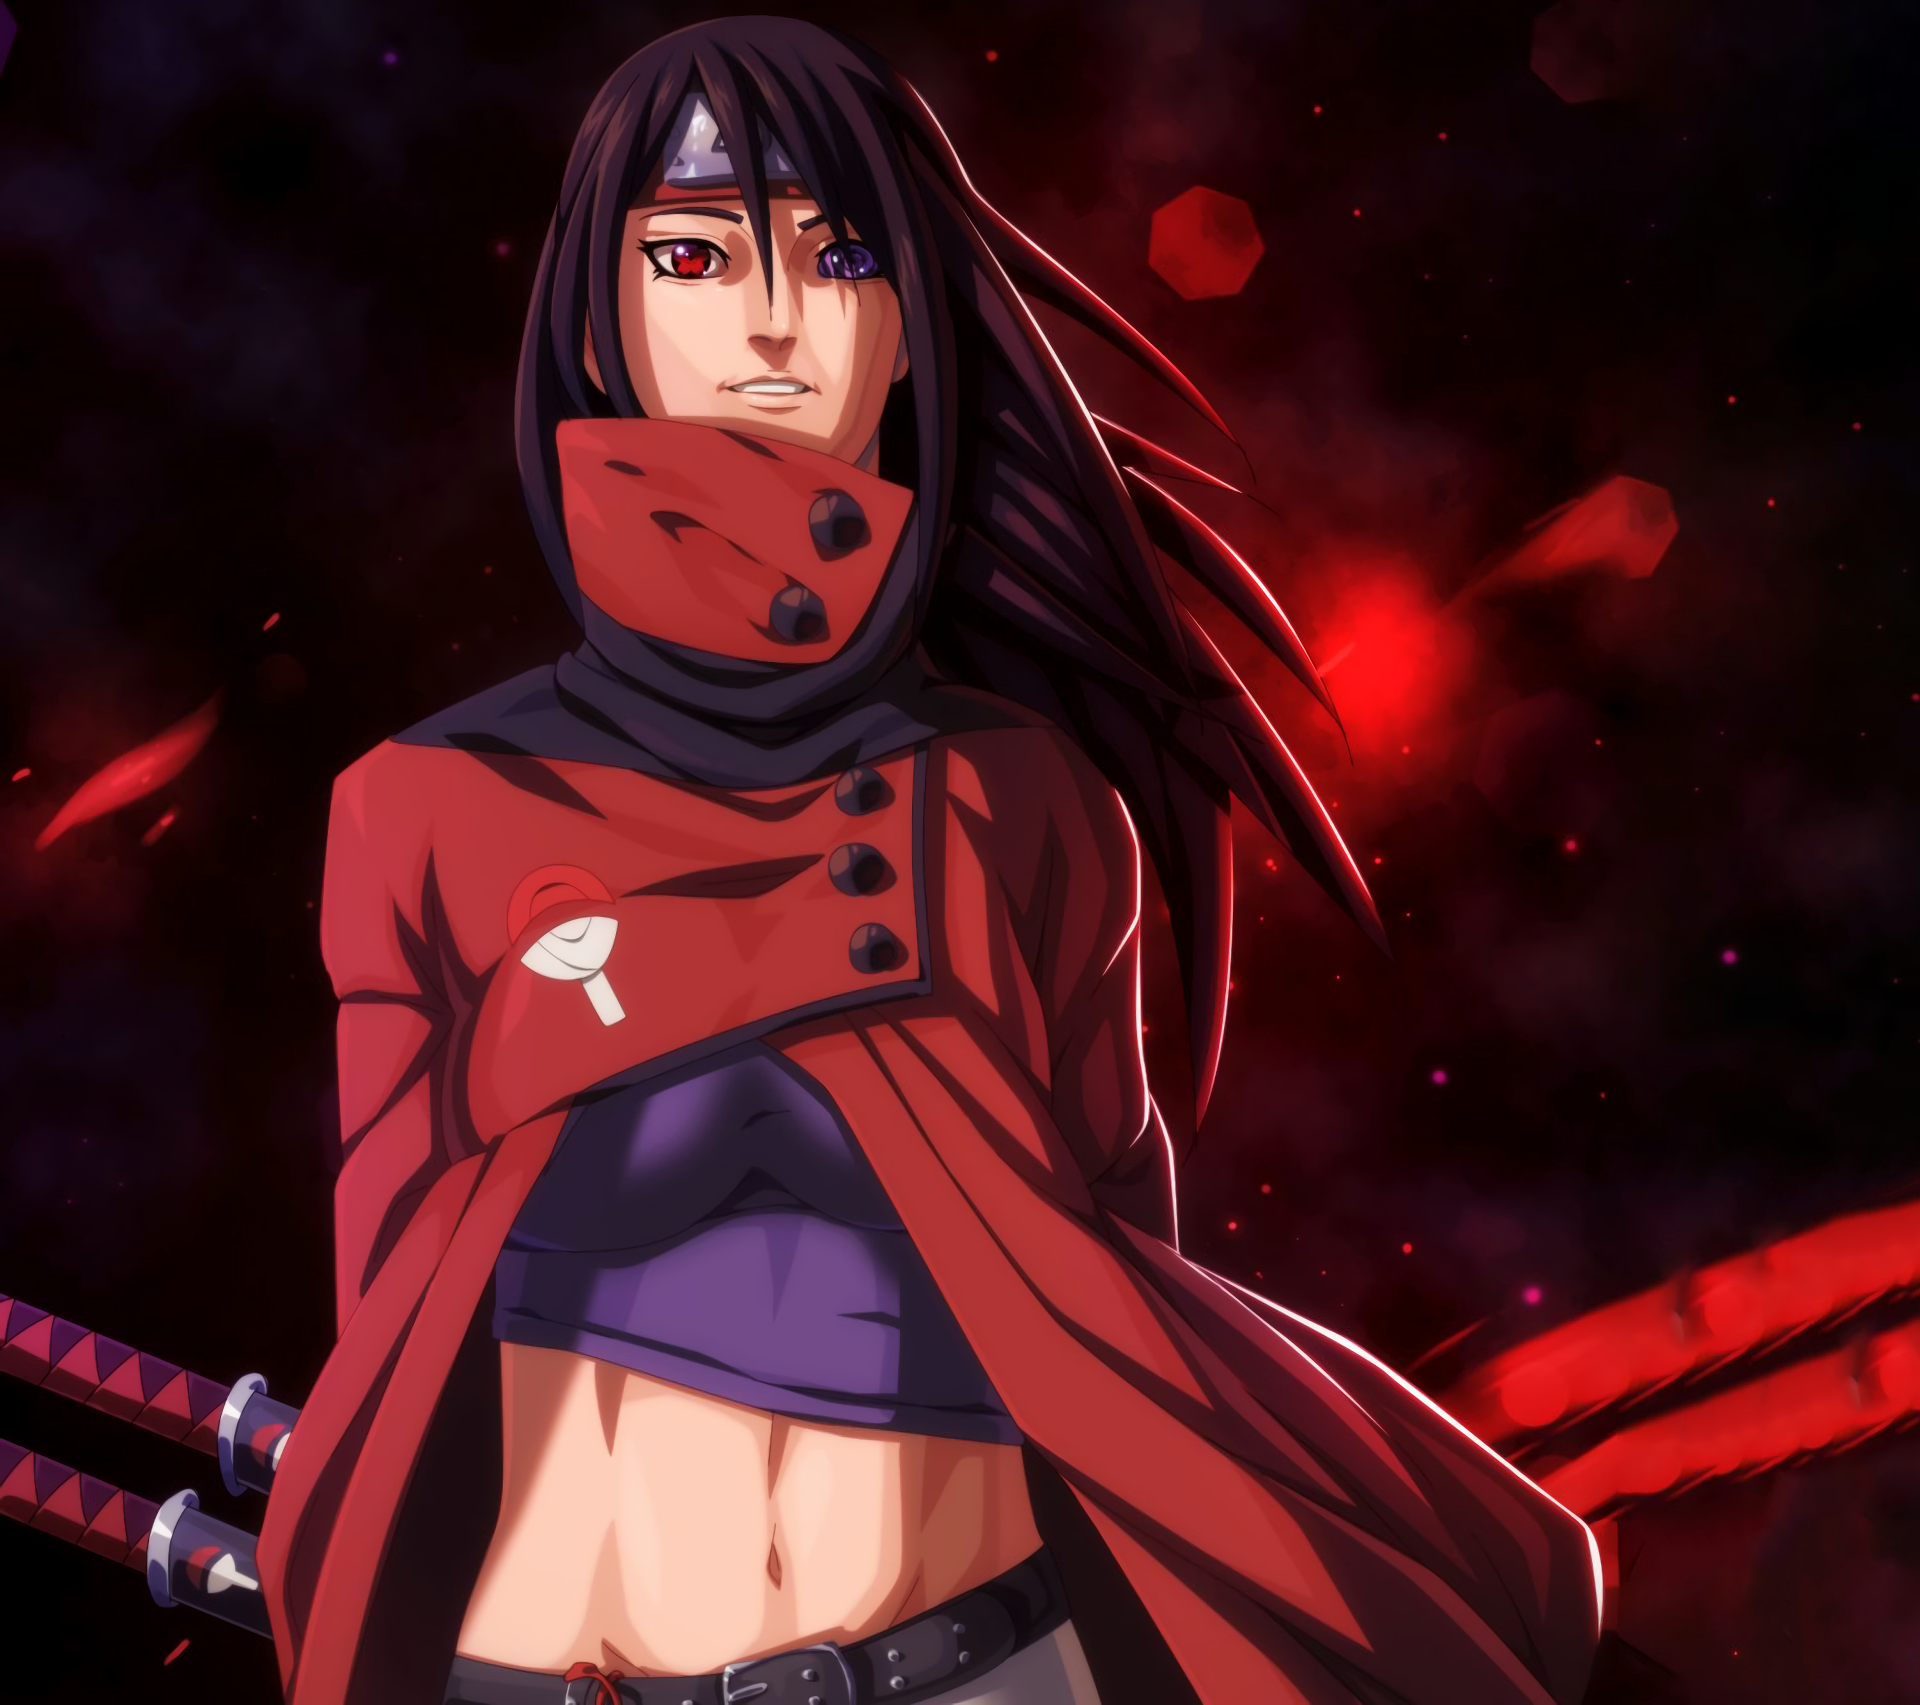 Sarada Uchiha Wallpapers Top Free Sarada Uchiha Backgrounds Wallpaperaccess